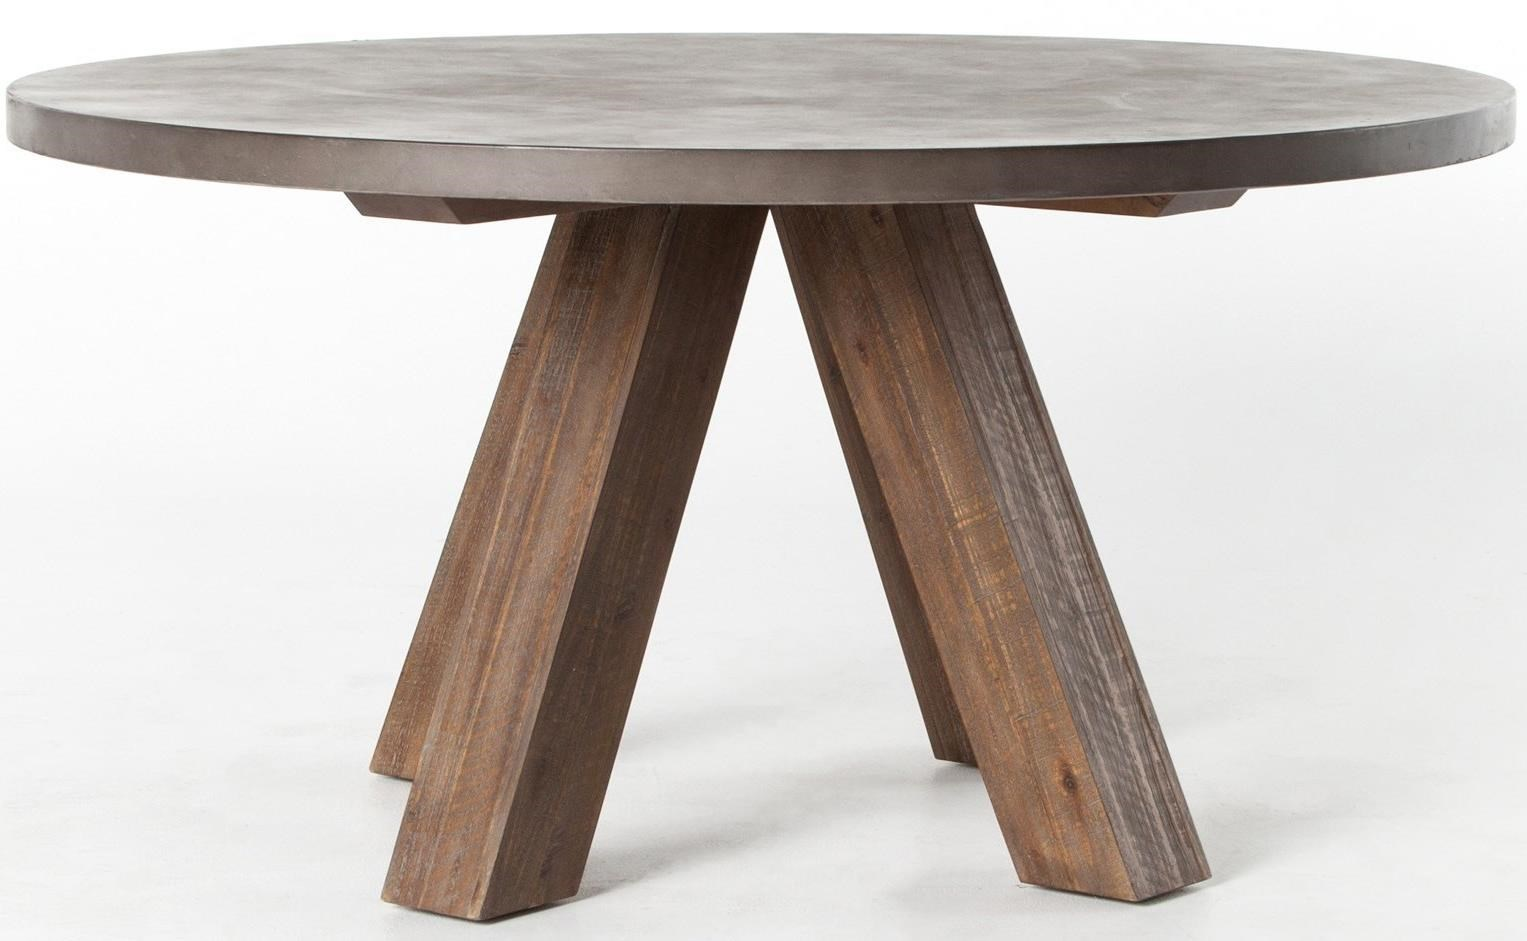 Four Hands Patten Chatham Dining Table With Concrete Top